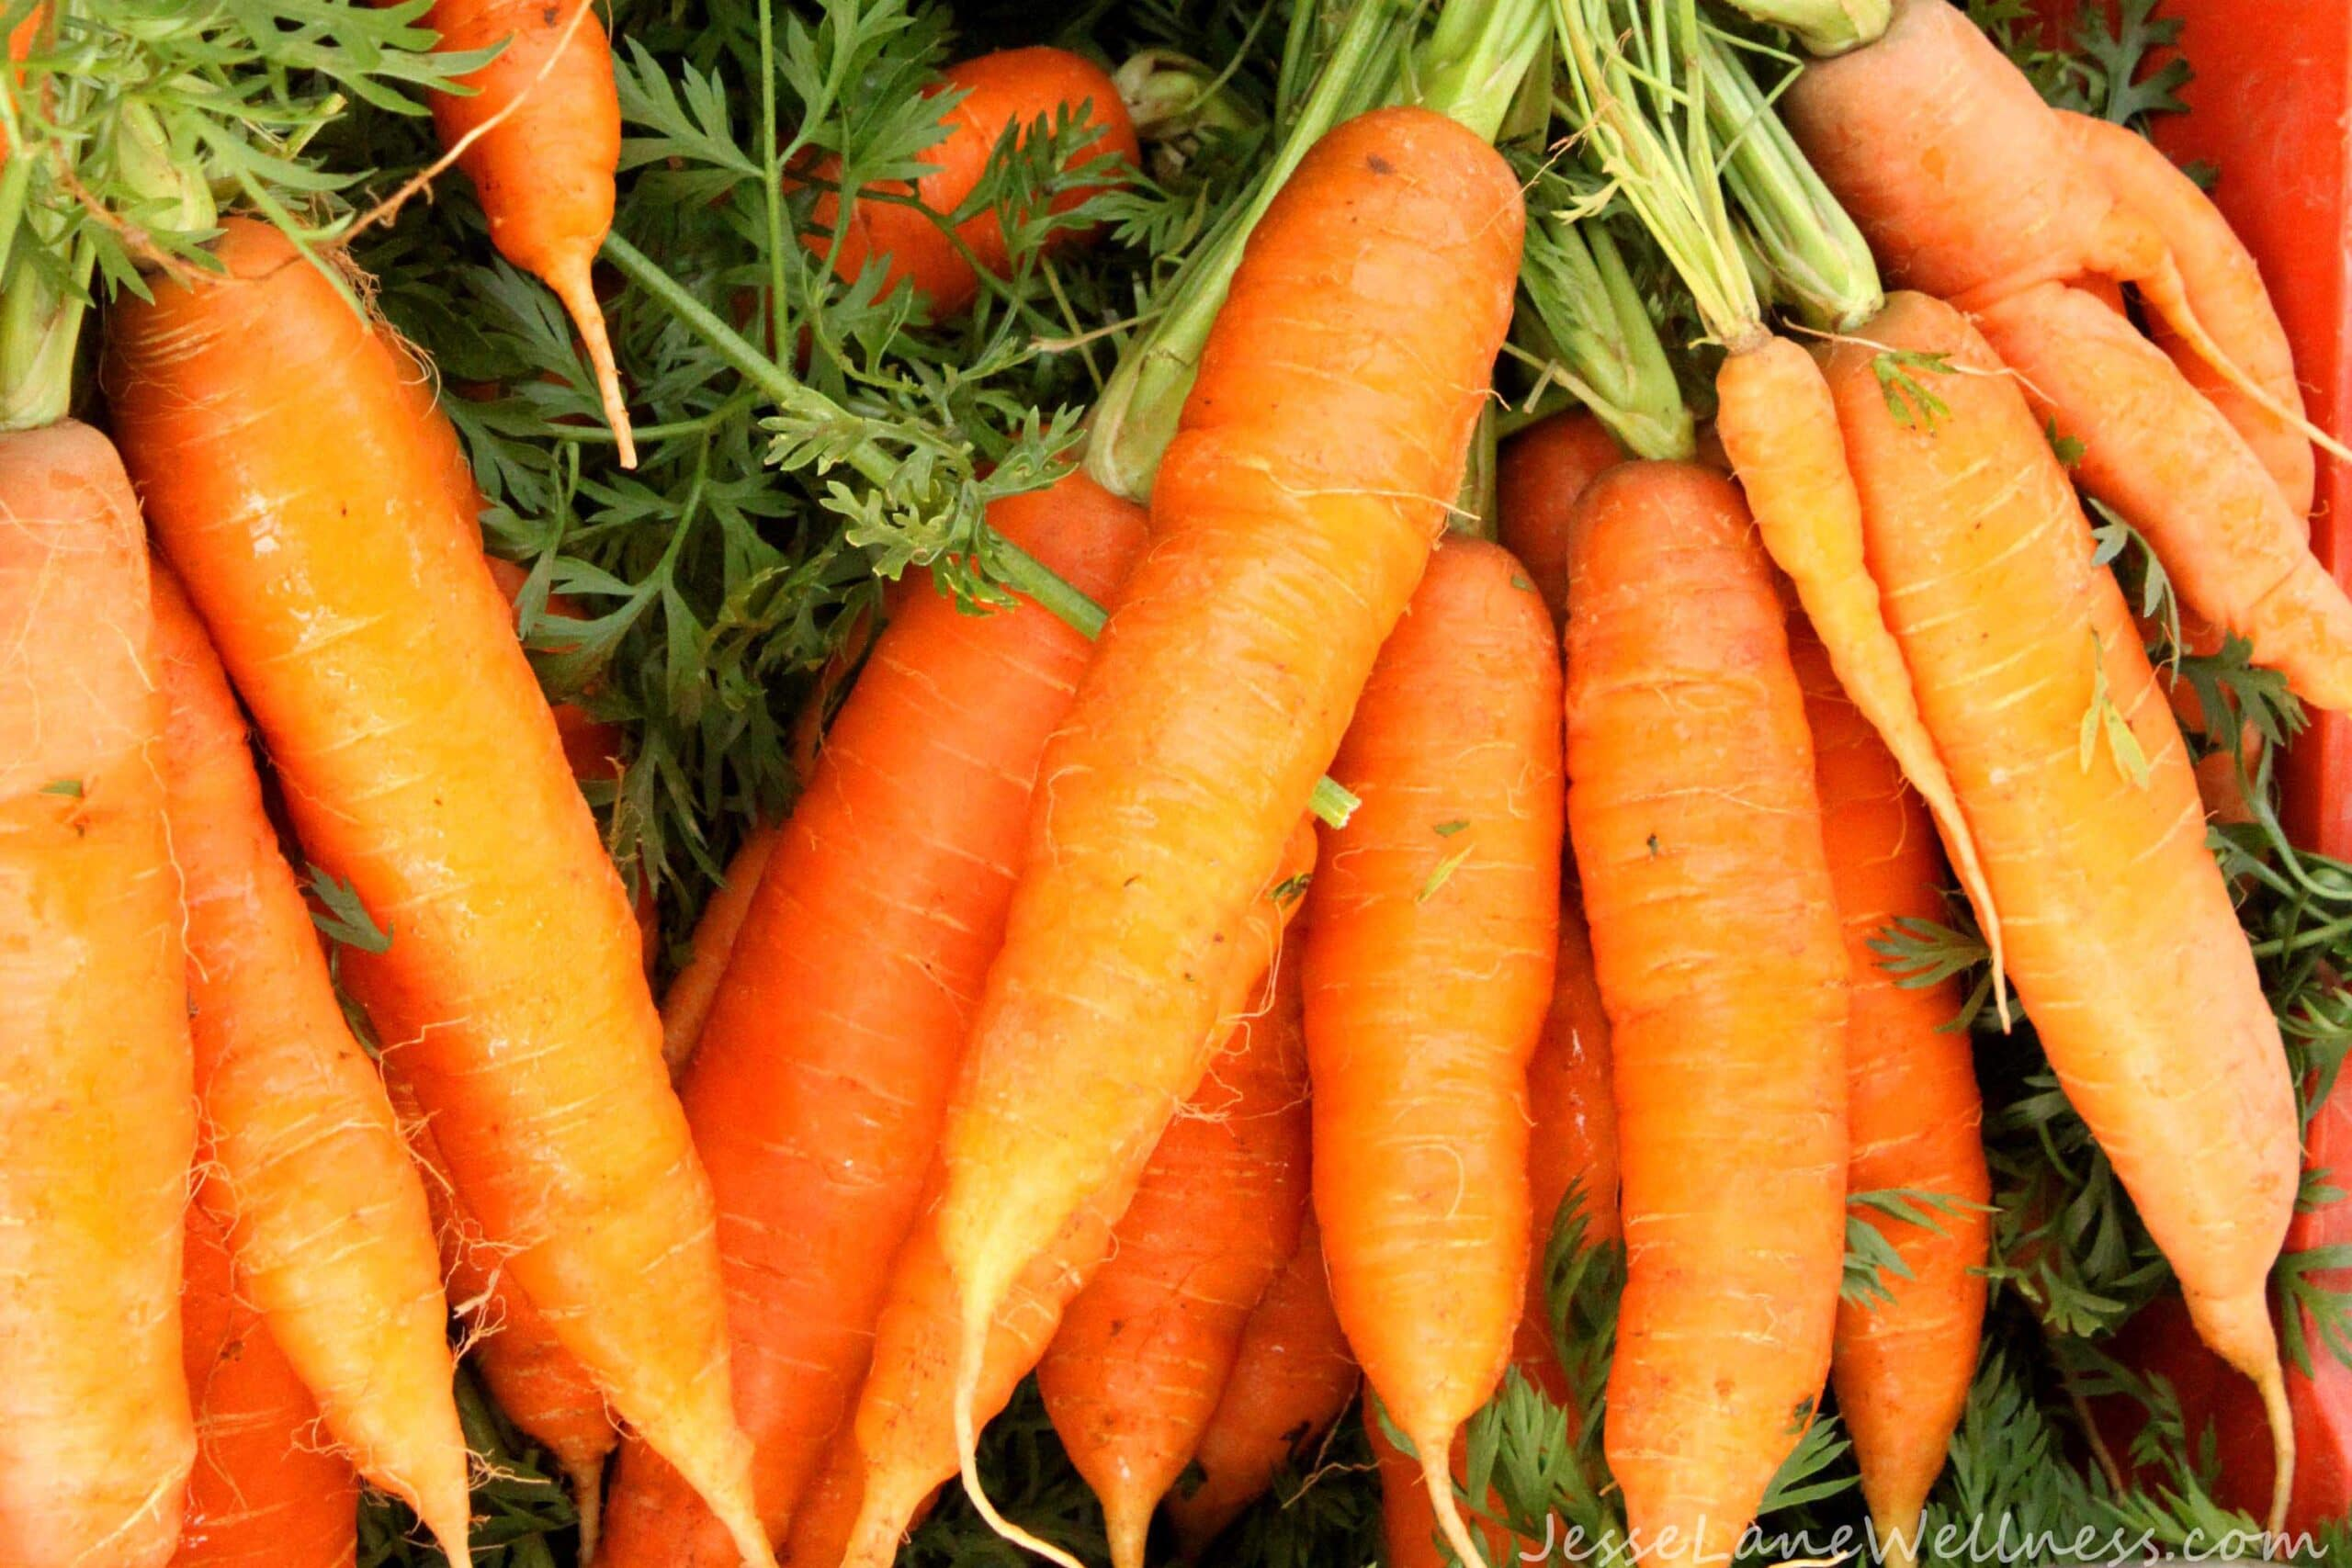 Carrots by @JesseLWellness #carrot